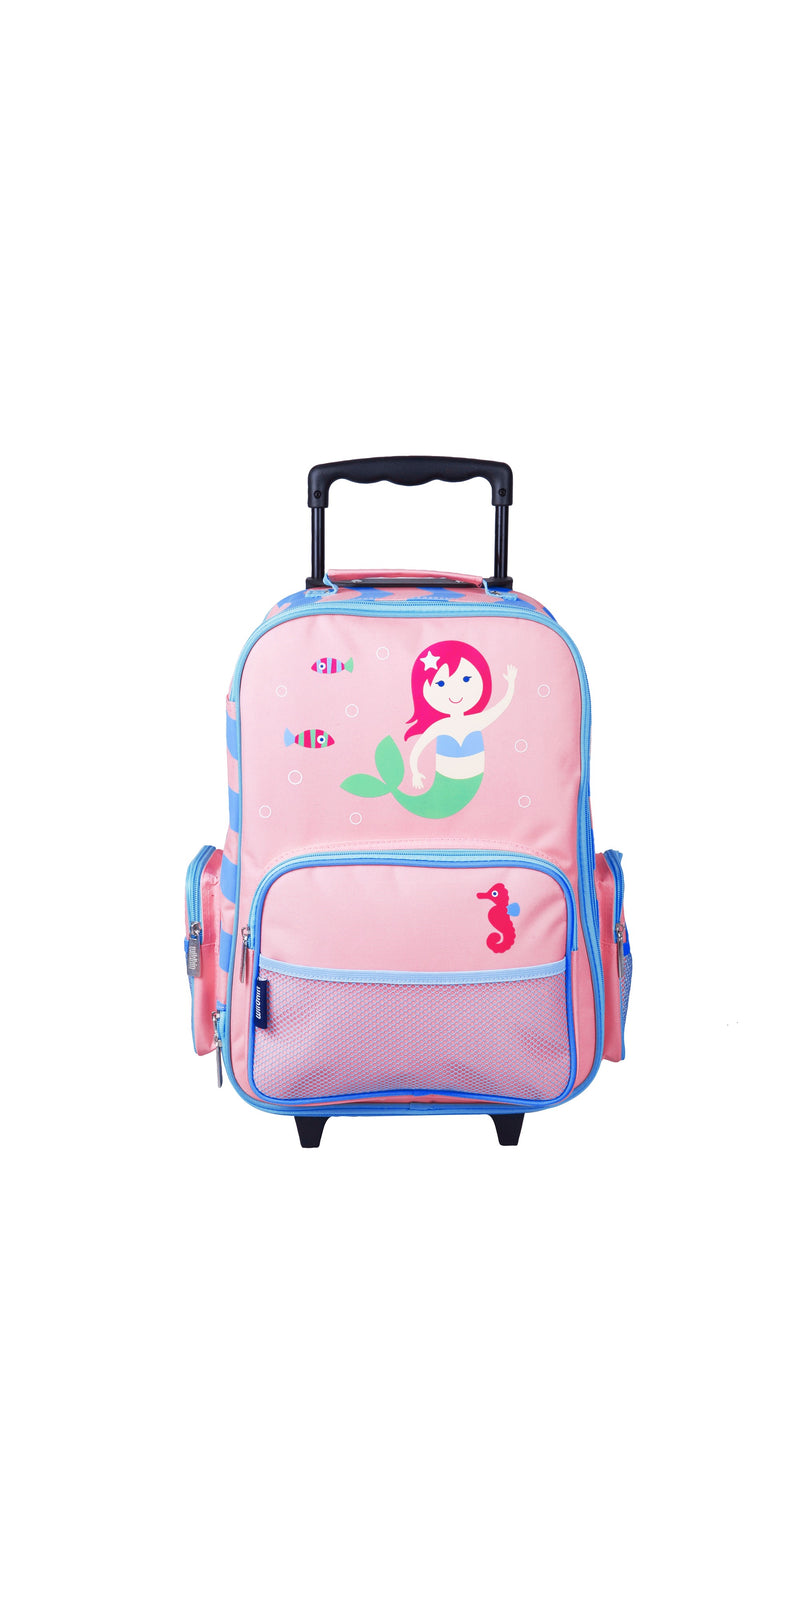 Wildkin Kids Carry-On Rolling Suitcase - Strong Suitcases-Vegan Luggage